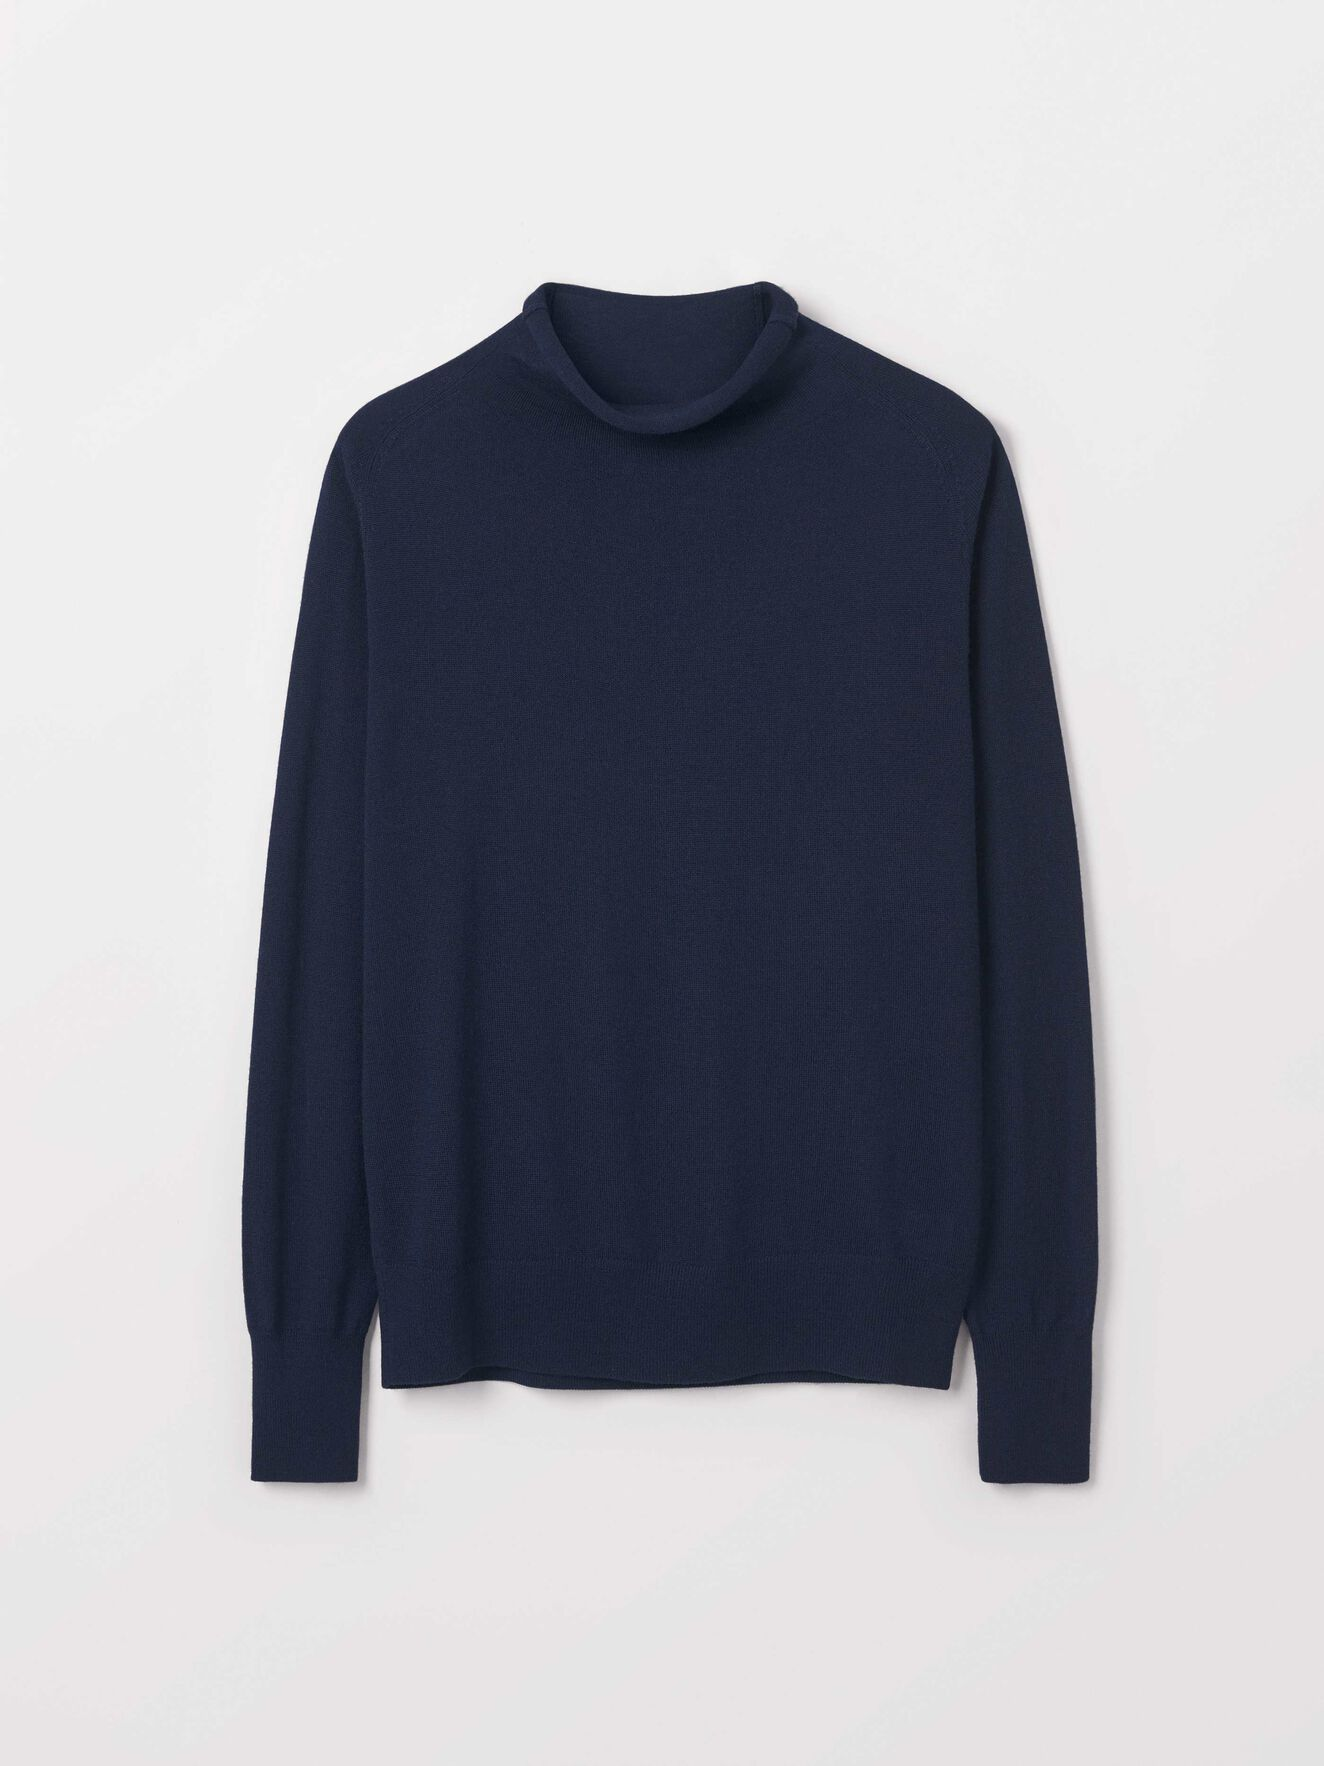 Nardo Pullover in Light Ink from Tiger of Sweden